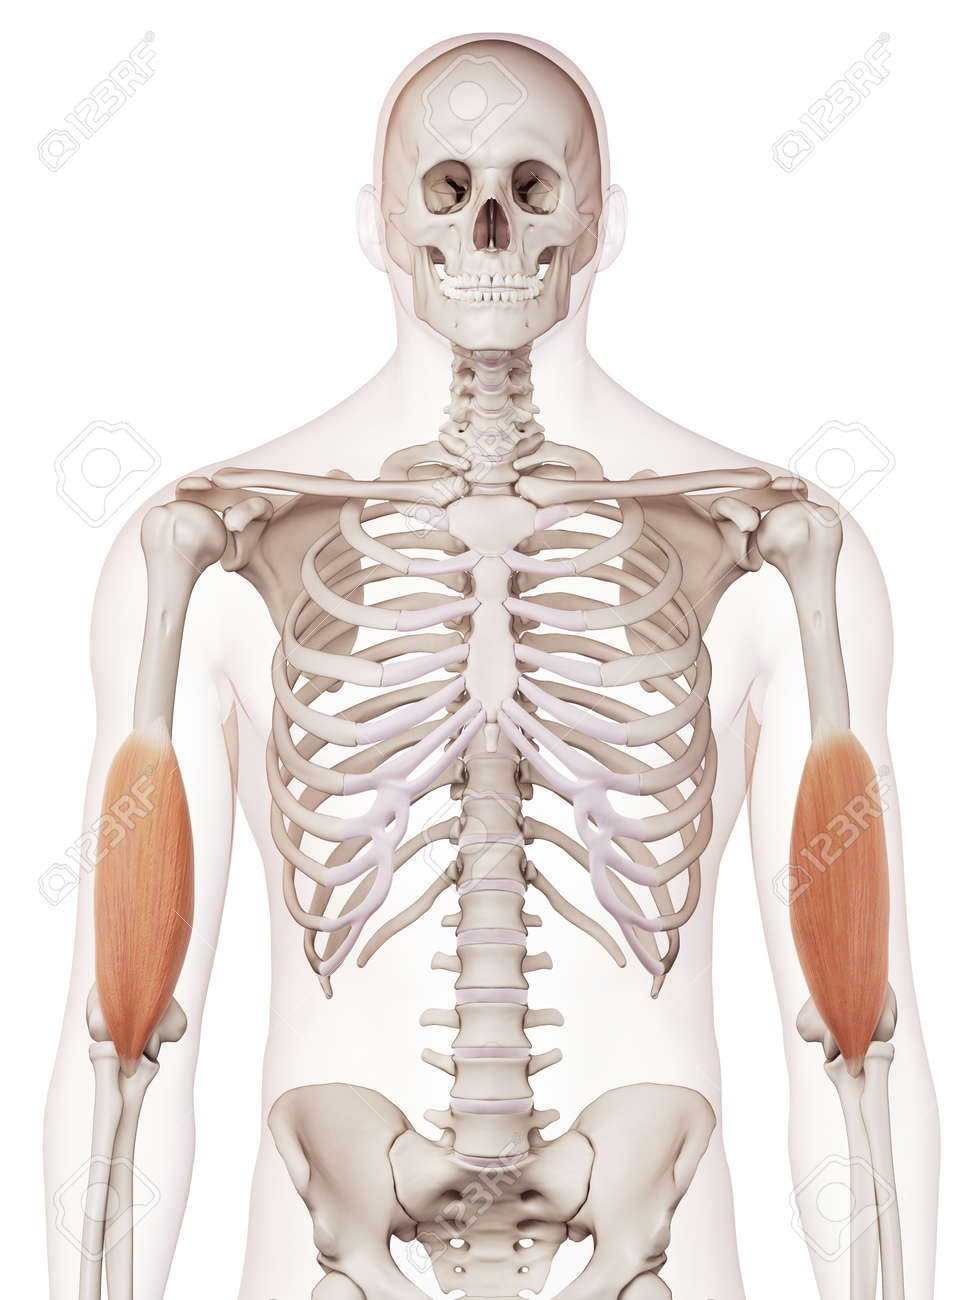 Medically Accurate Muscle Illustration Of The Brachialis Stock Photo ...